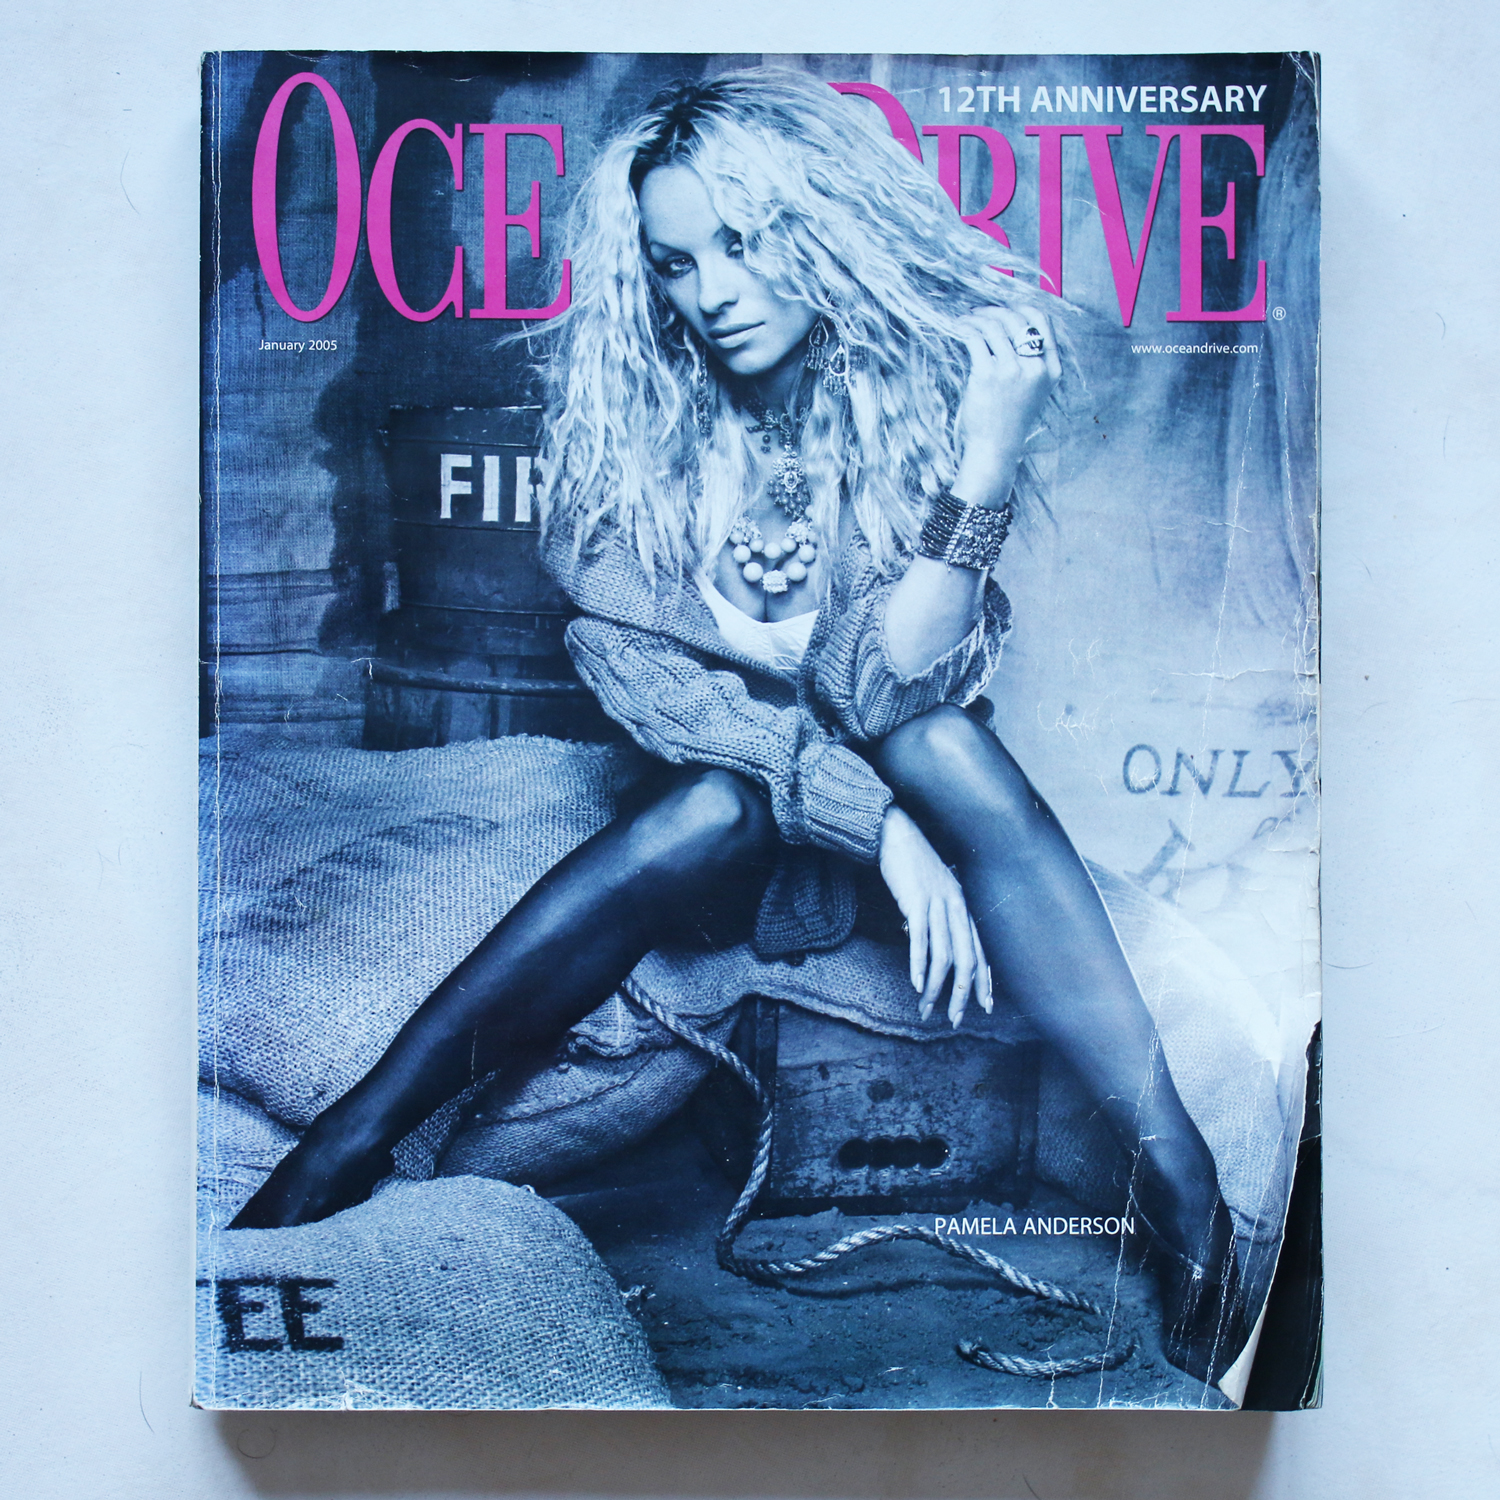 Ocean Drive Magazine 12 Year Anniversary Edition - Includes Graffiti Tattoo Artist Tattooing Dennis Rodman